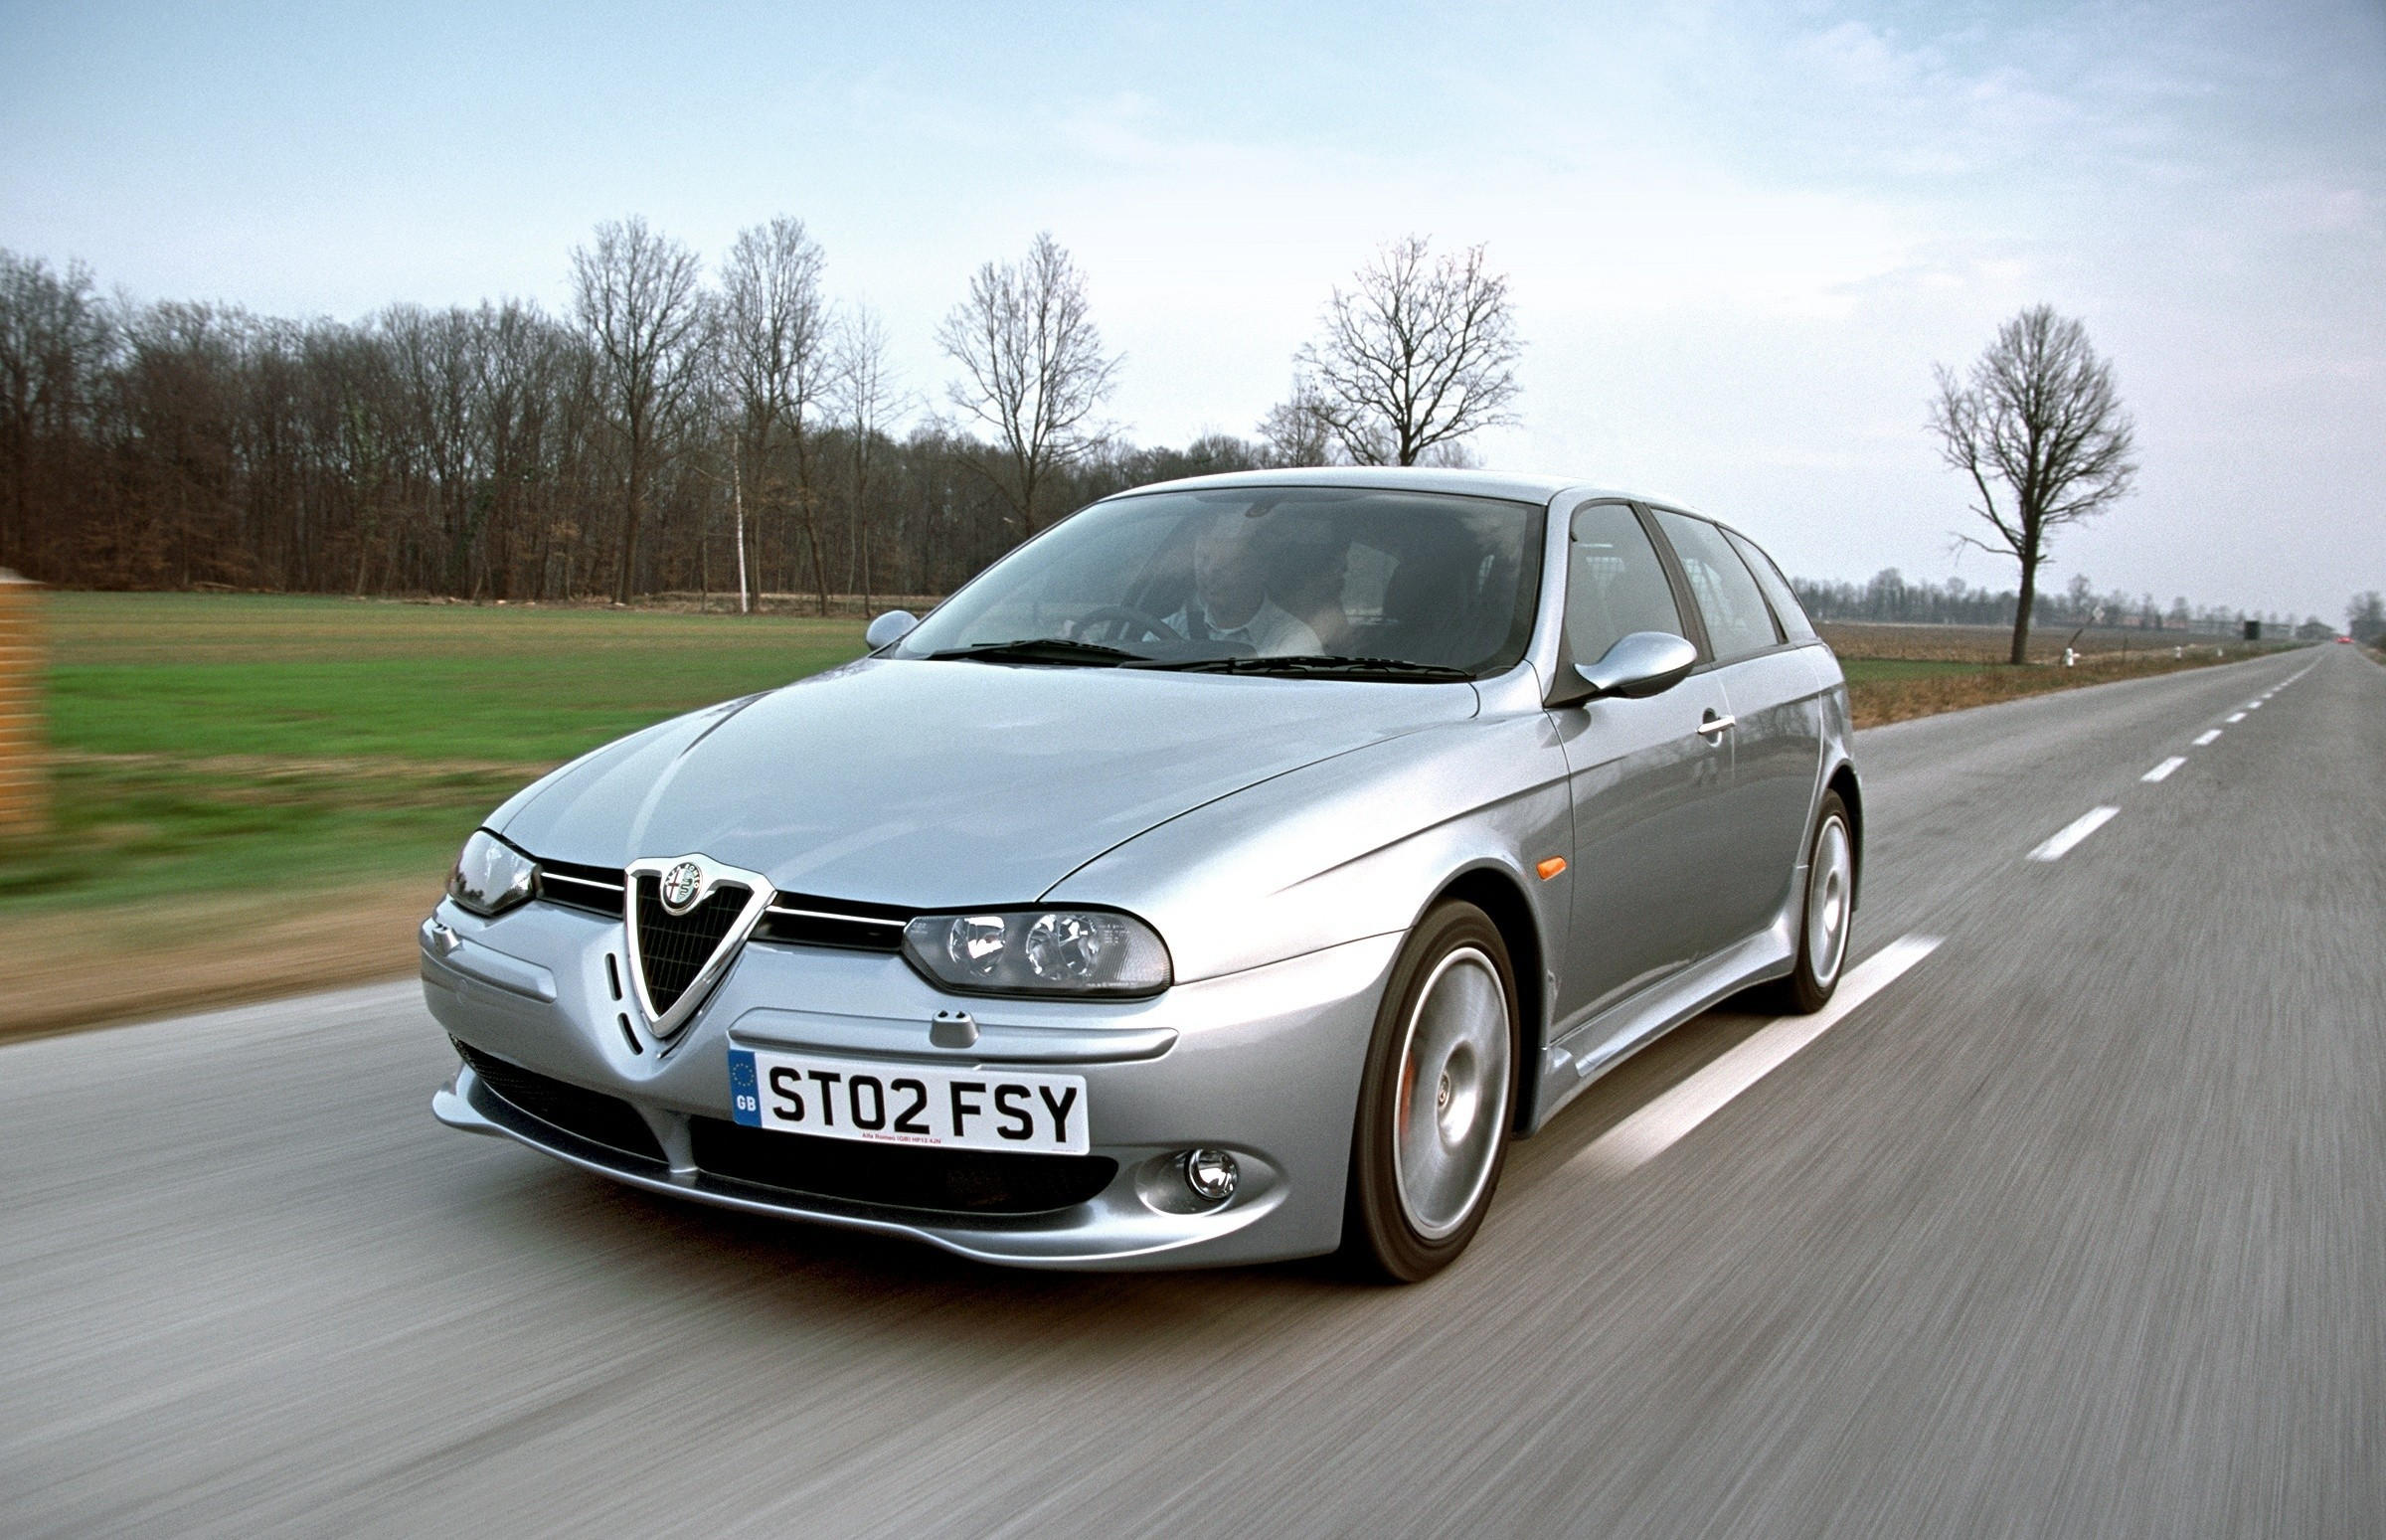 alfa romeo 156 car technical data car specifications vehicle fuel consumption information. Black Bedroom Furniture Sets. Home Design Ideas